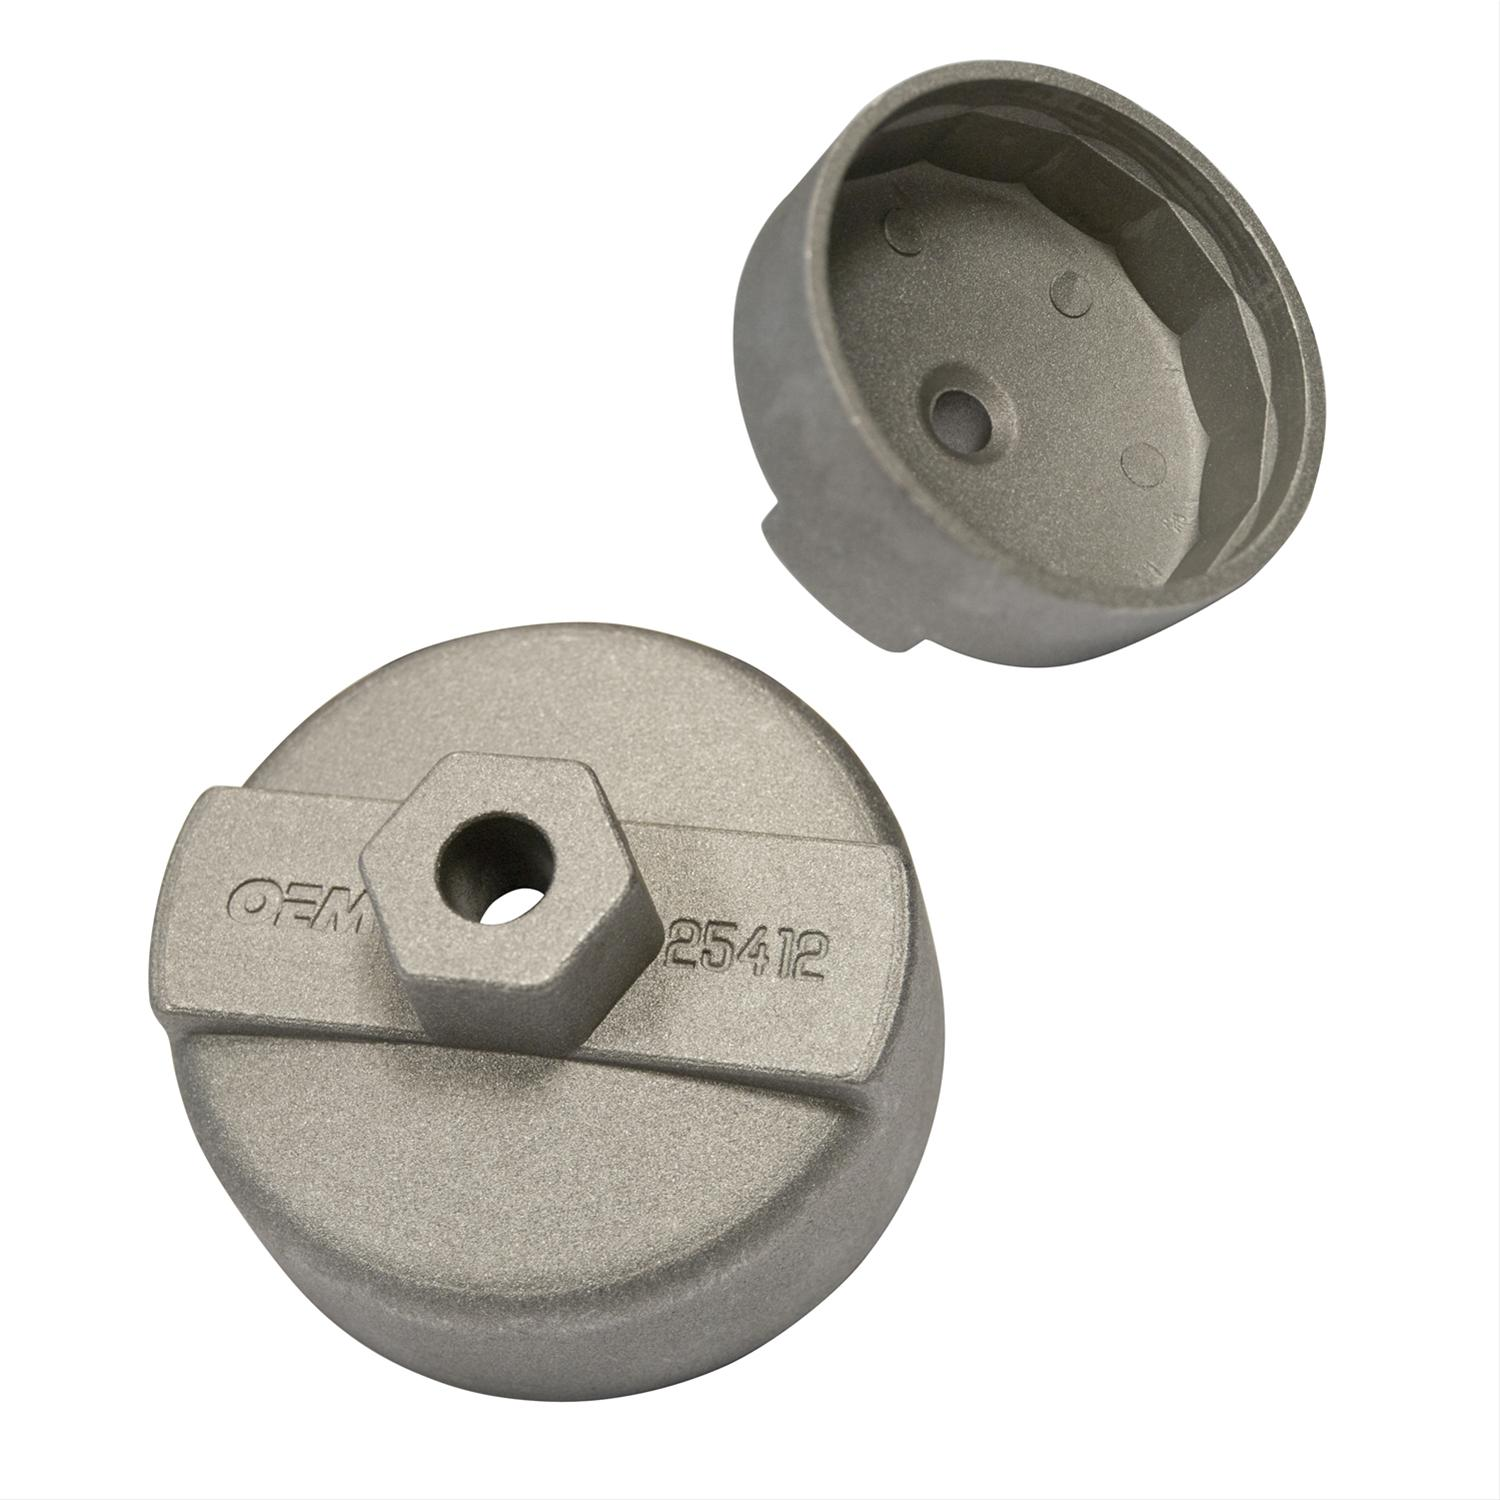 hight resolution of oem automotive tools oil filter cap wrenches 25412 free shipping on orders over 99 at summit racing